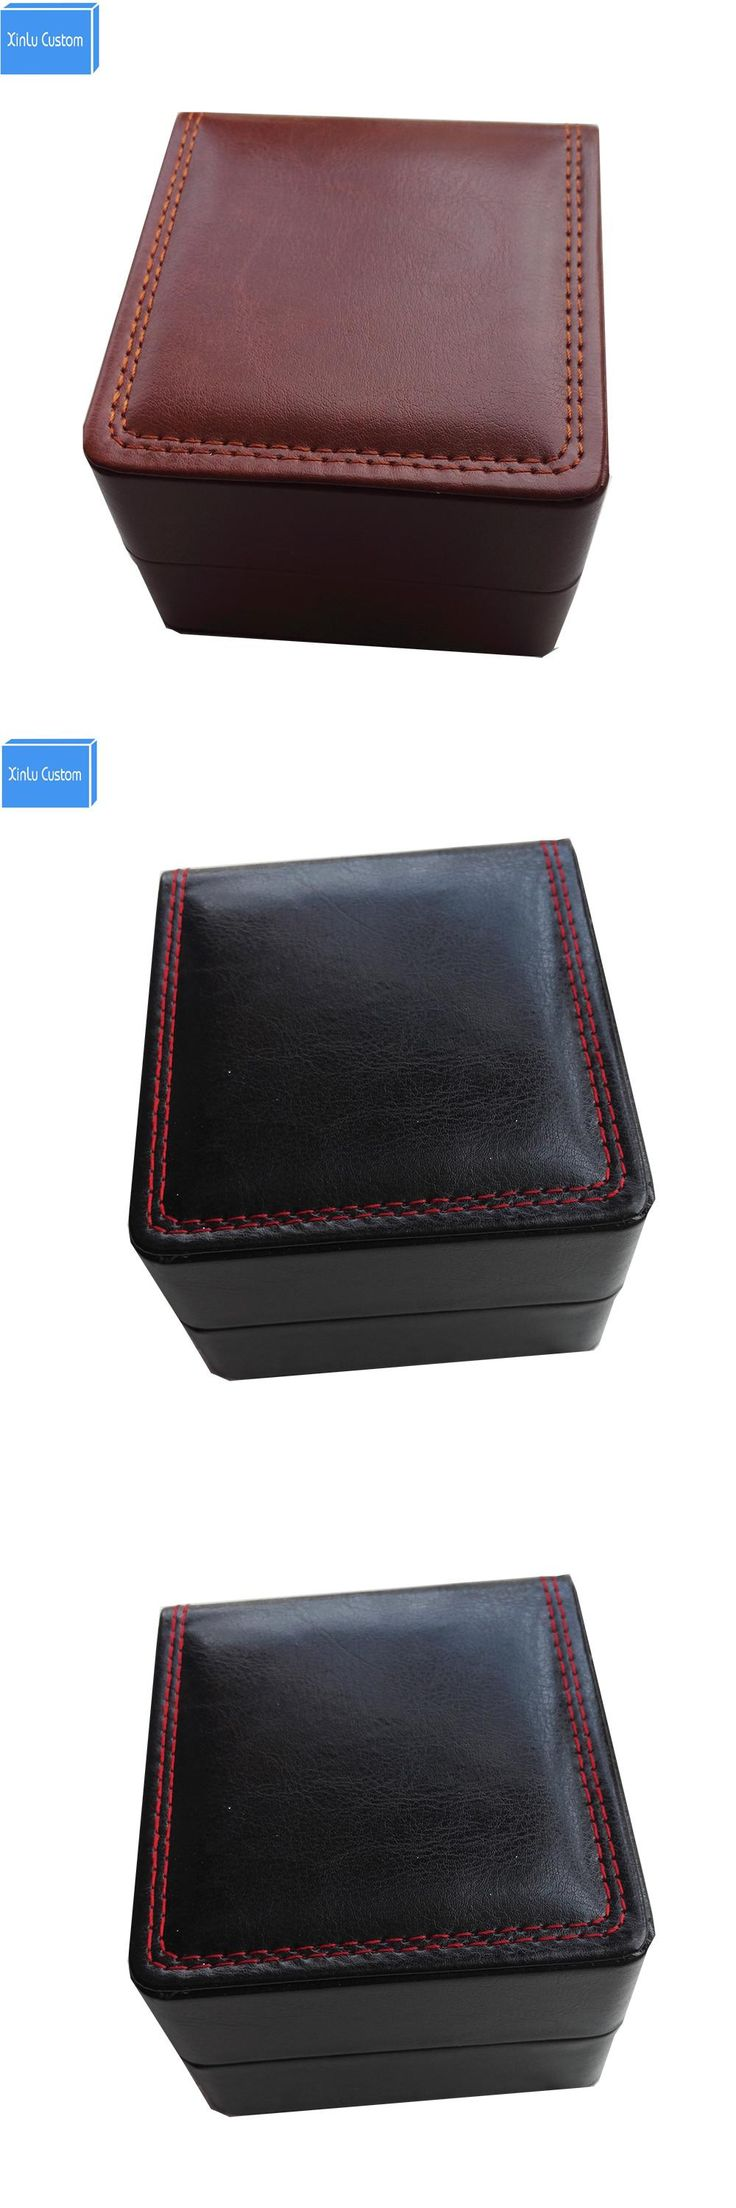 Quality cheap wholesale CUSTOM LOGO BOX black/brown/red leather sewing inner velvet pillow jewelry leather watch box storage